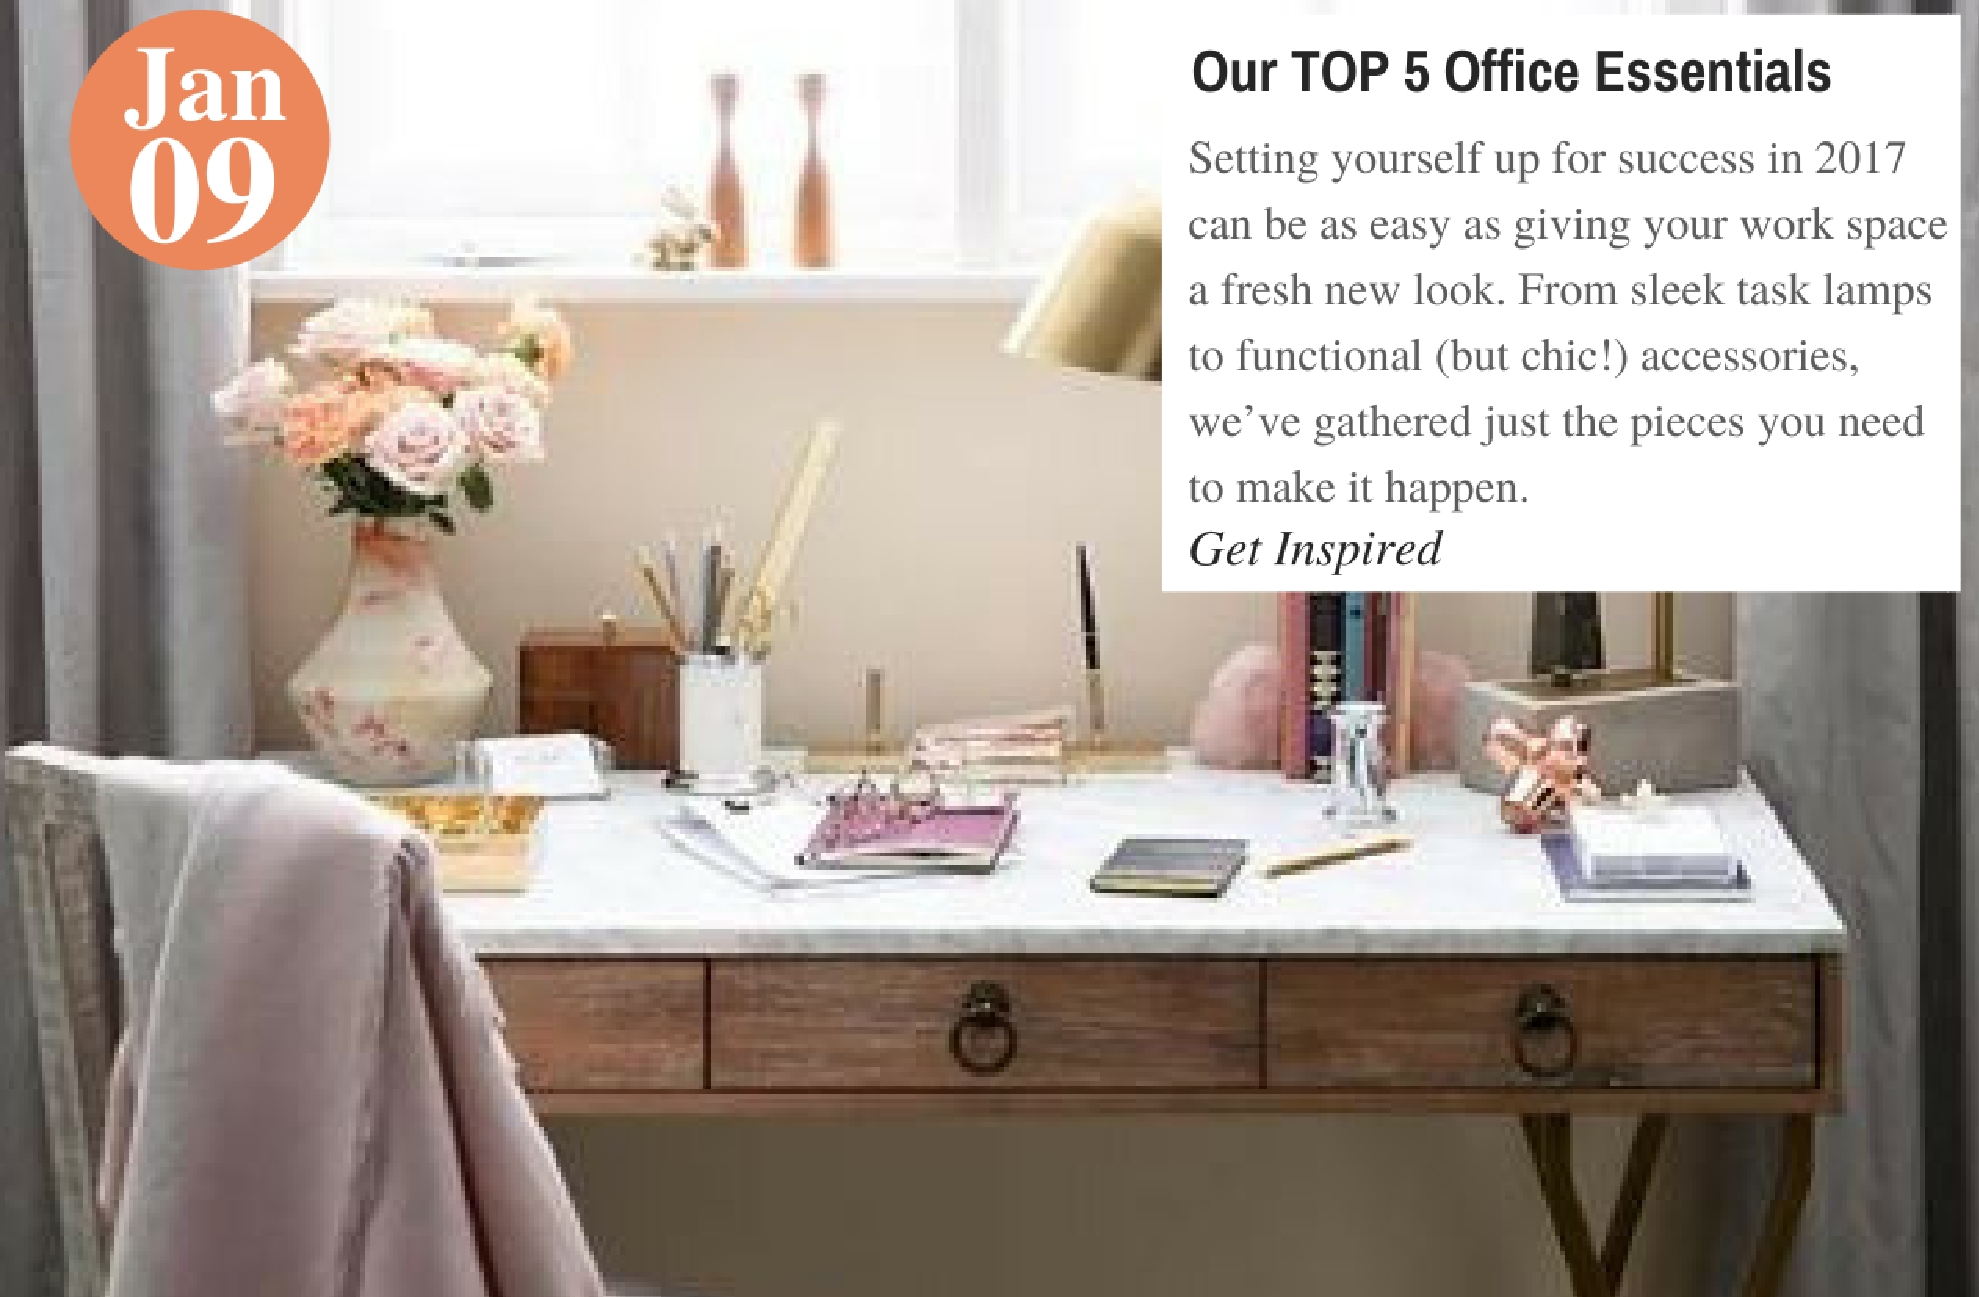 Our TOP 5 Office Essentials